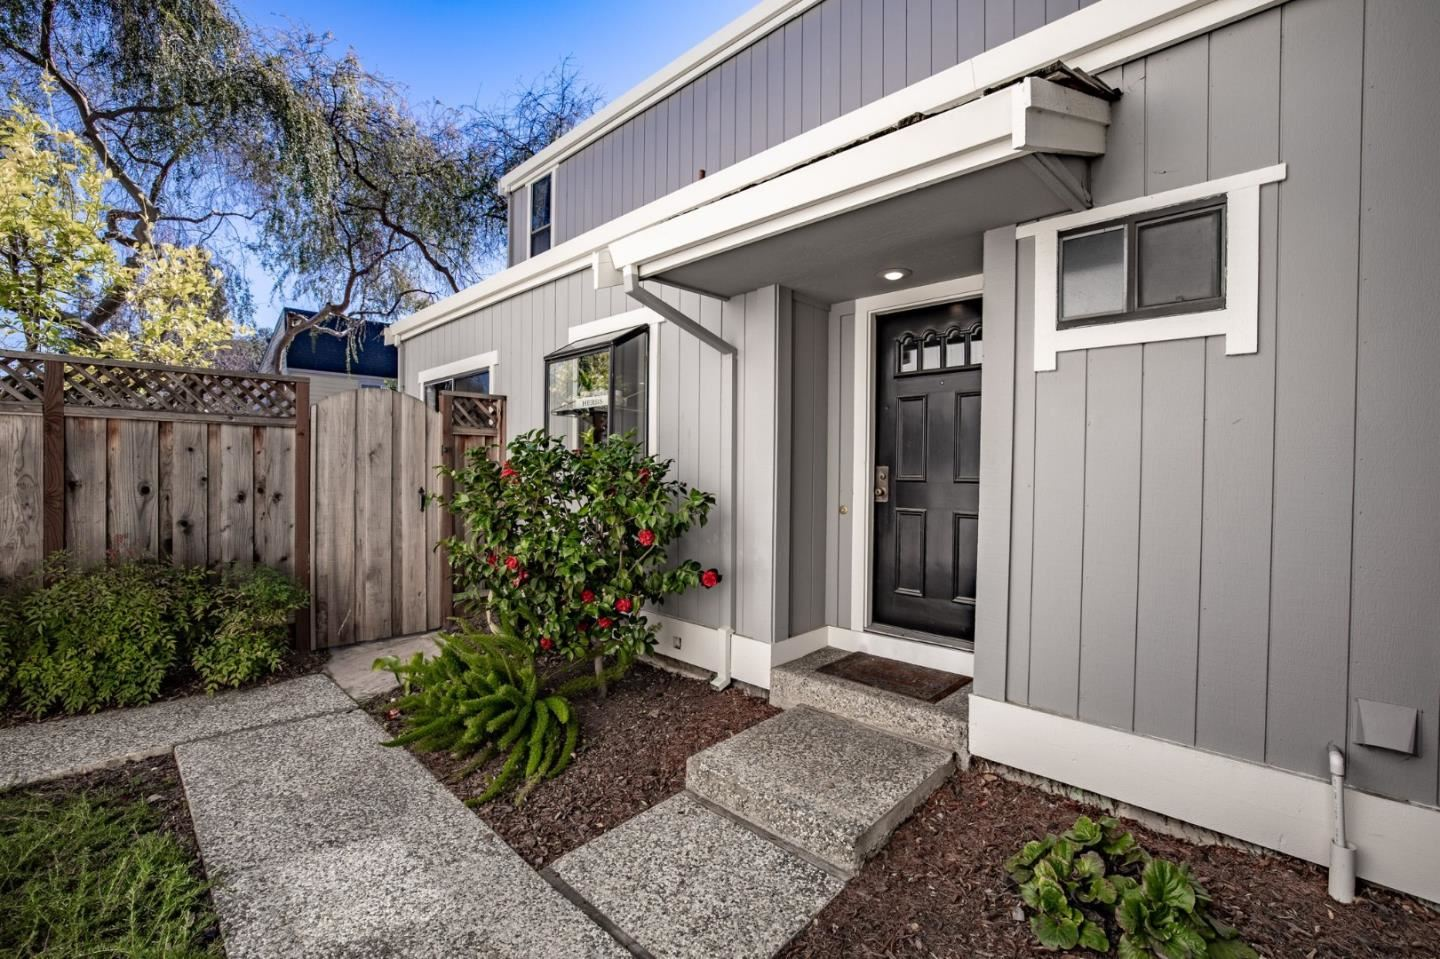 Photo for 163 Gladys AVE, MOUNTAIN VIEW, CA 94043 (MLS # ML81829761)